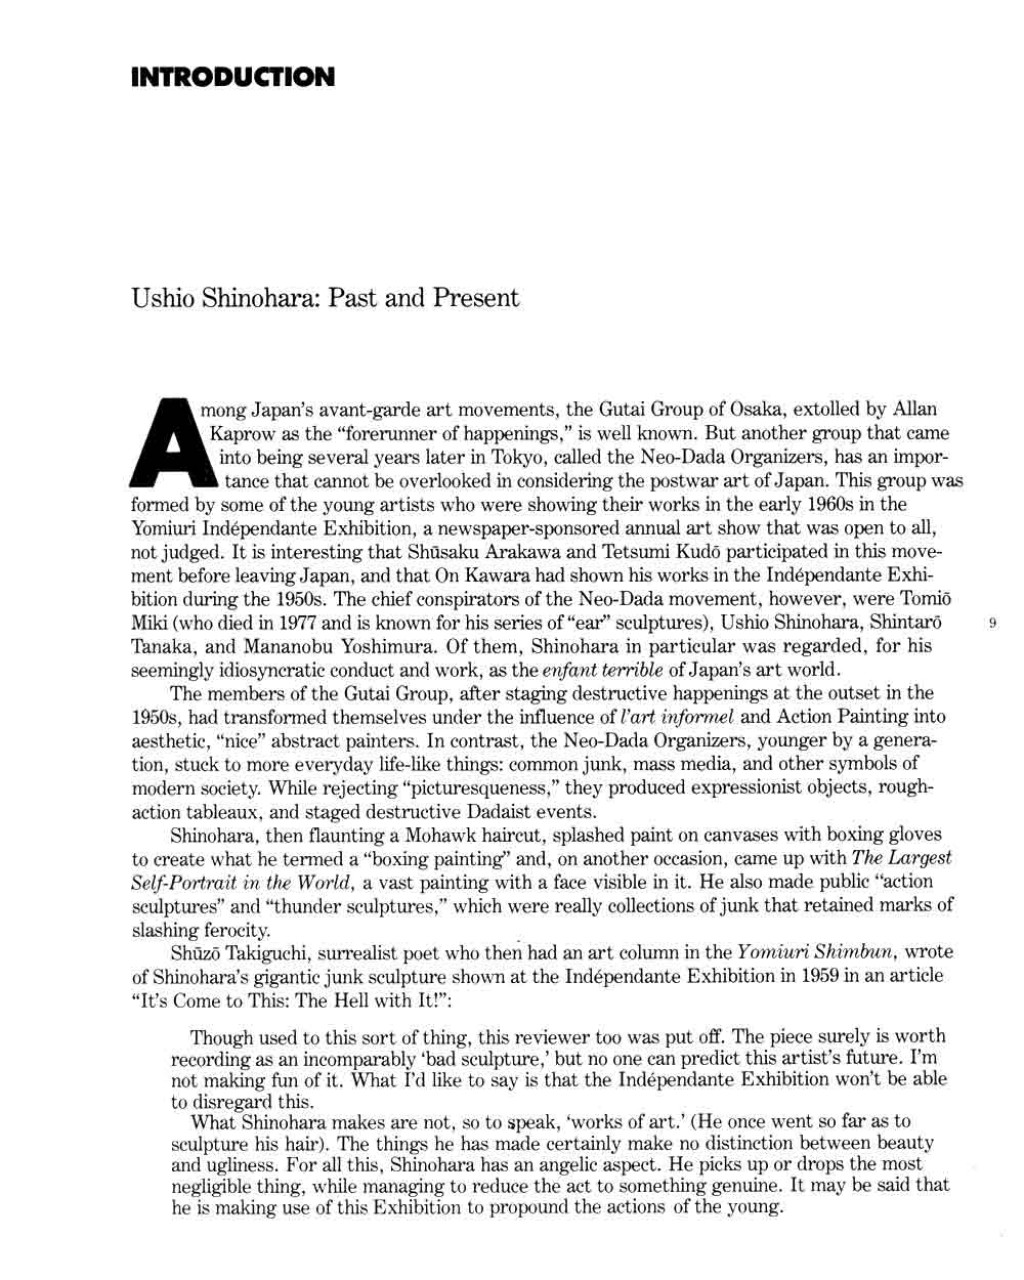 005 How To Cite An Essay Example Ushio Shinohara Past And Present Pg 1 Archaicawful In A Book Mla 8th Edition Work Format Within Apa Large